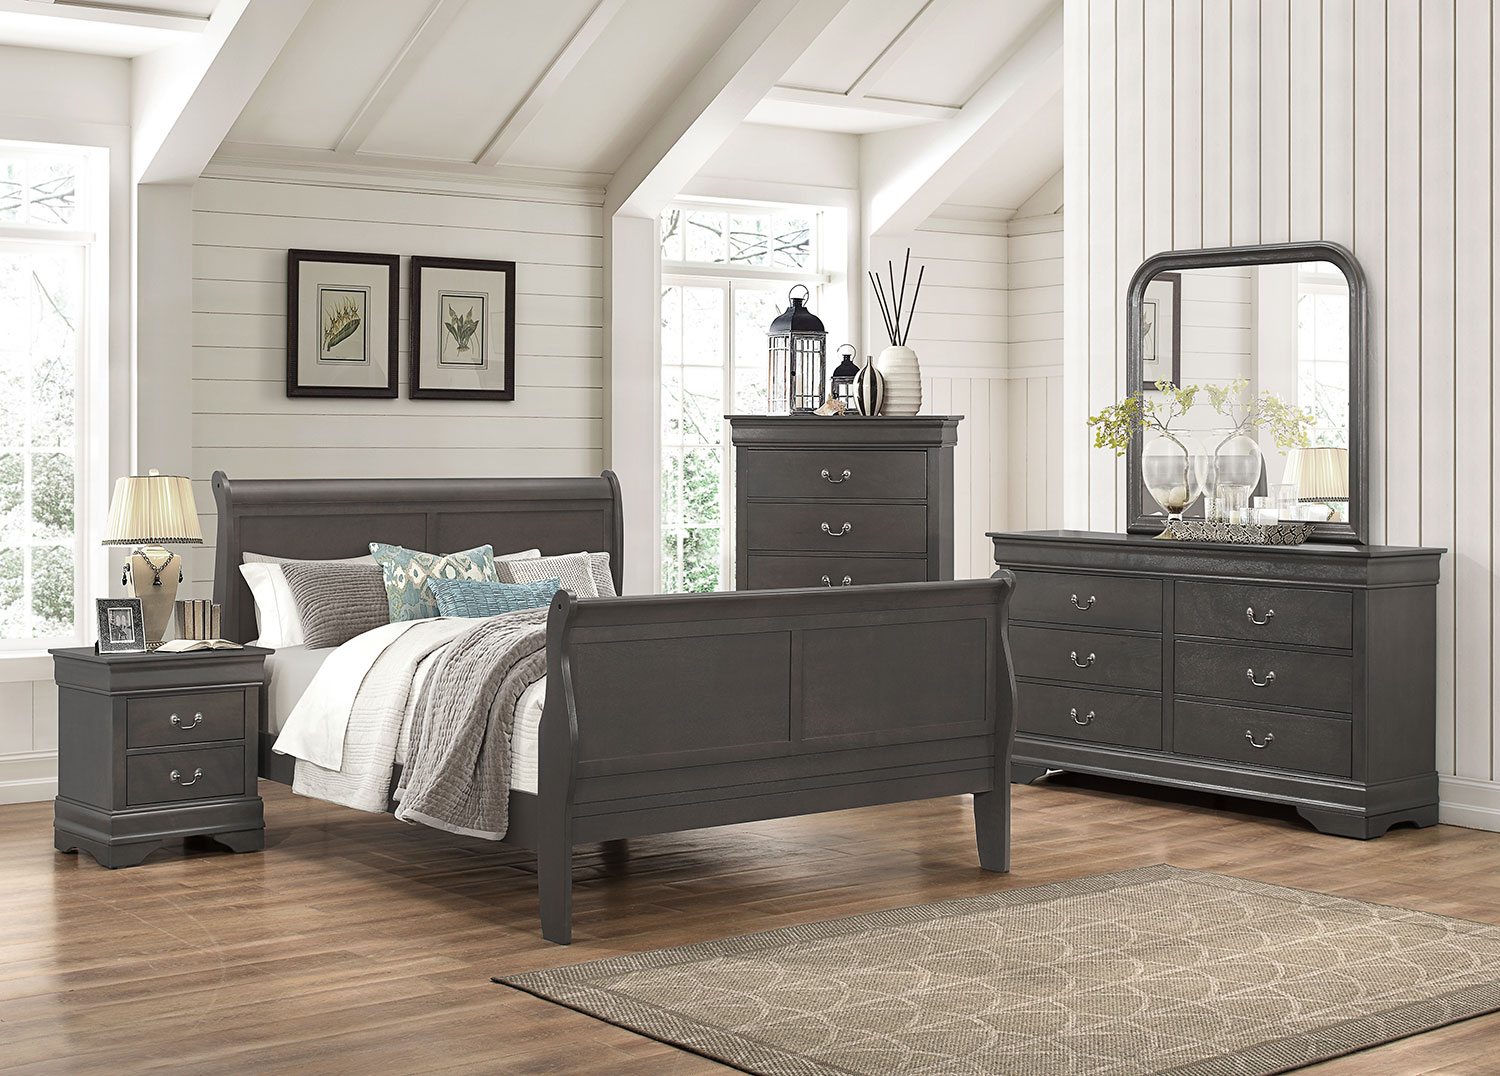 The Lyla Grey Bedroom Collection